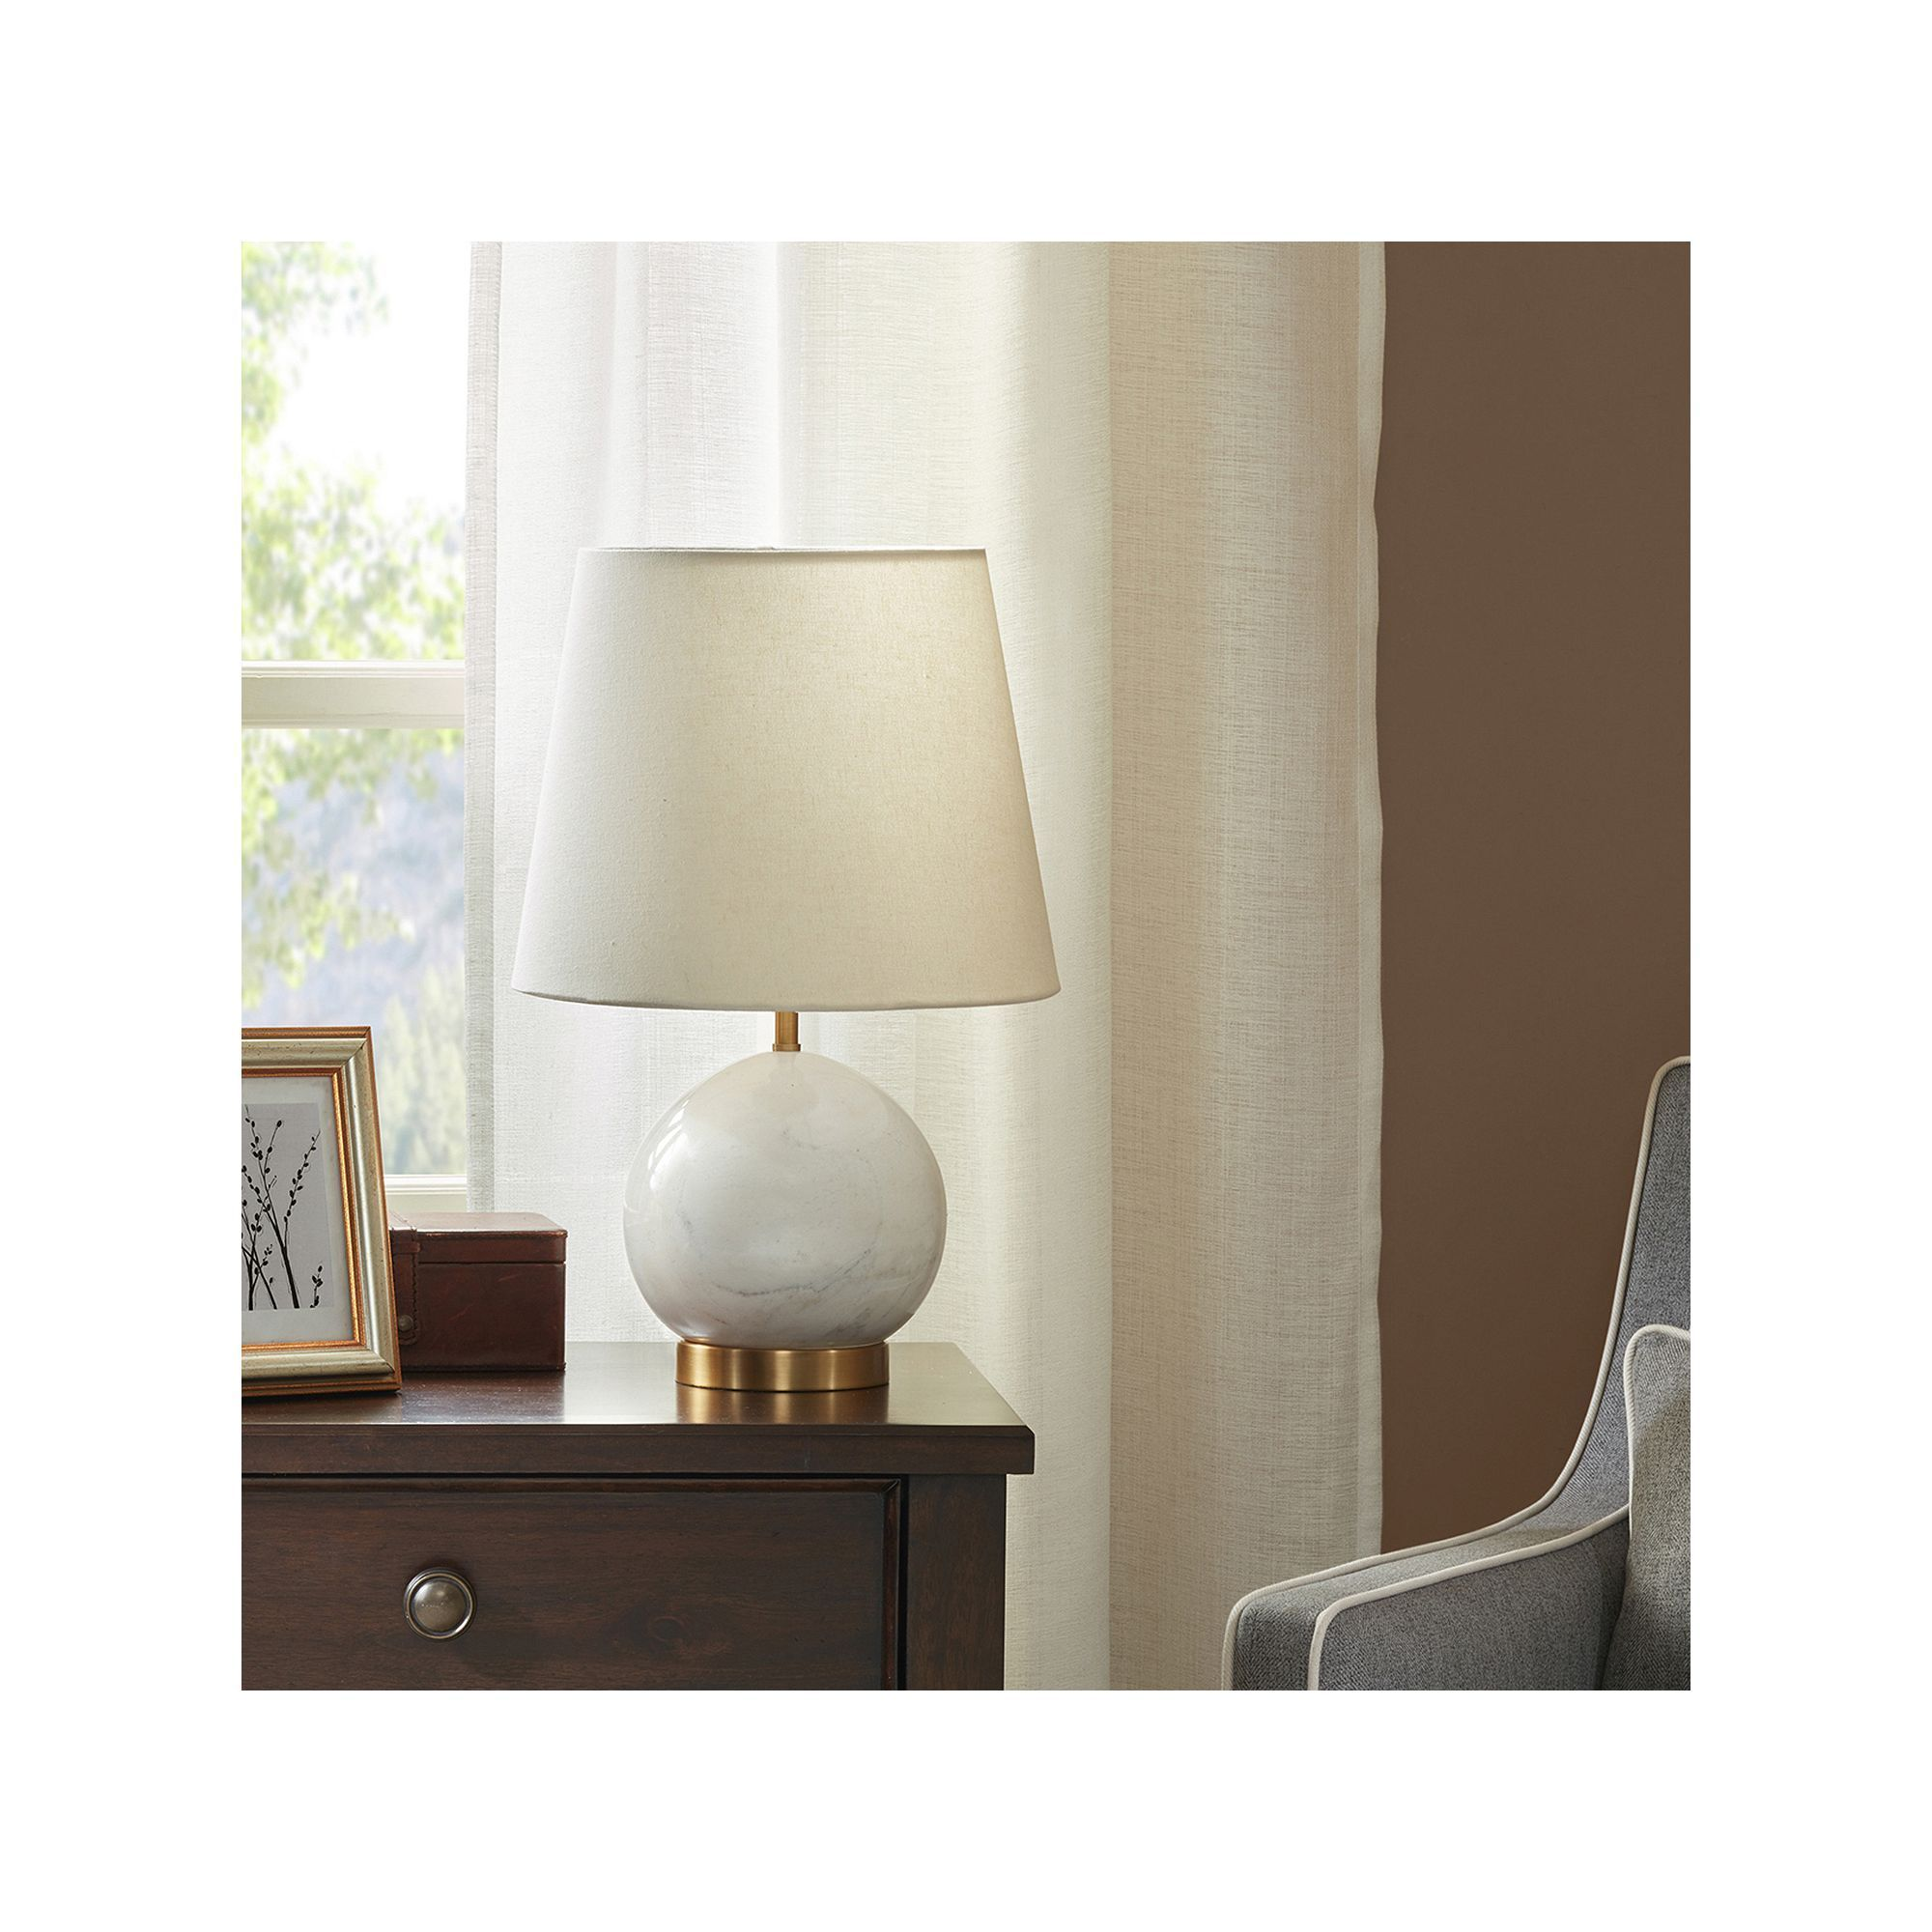 Madison Park Signature Marble Sphere Table lamp, White